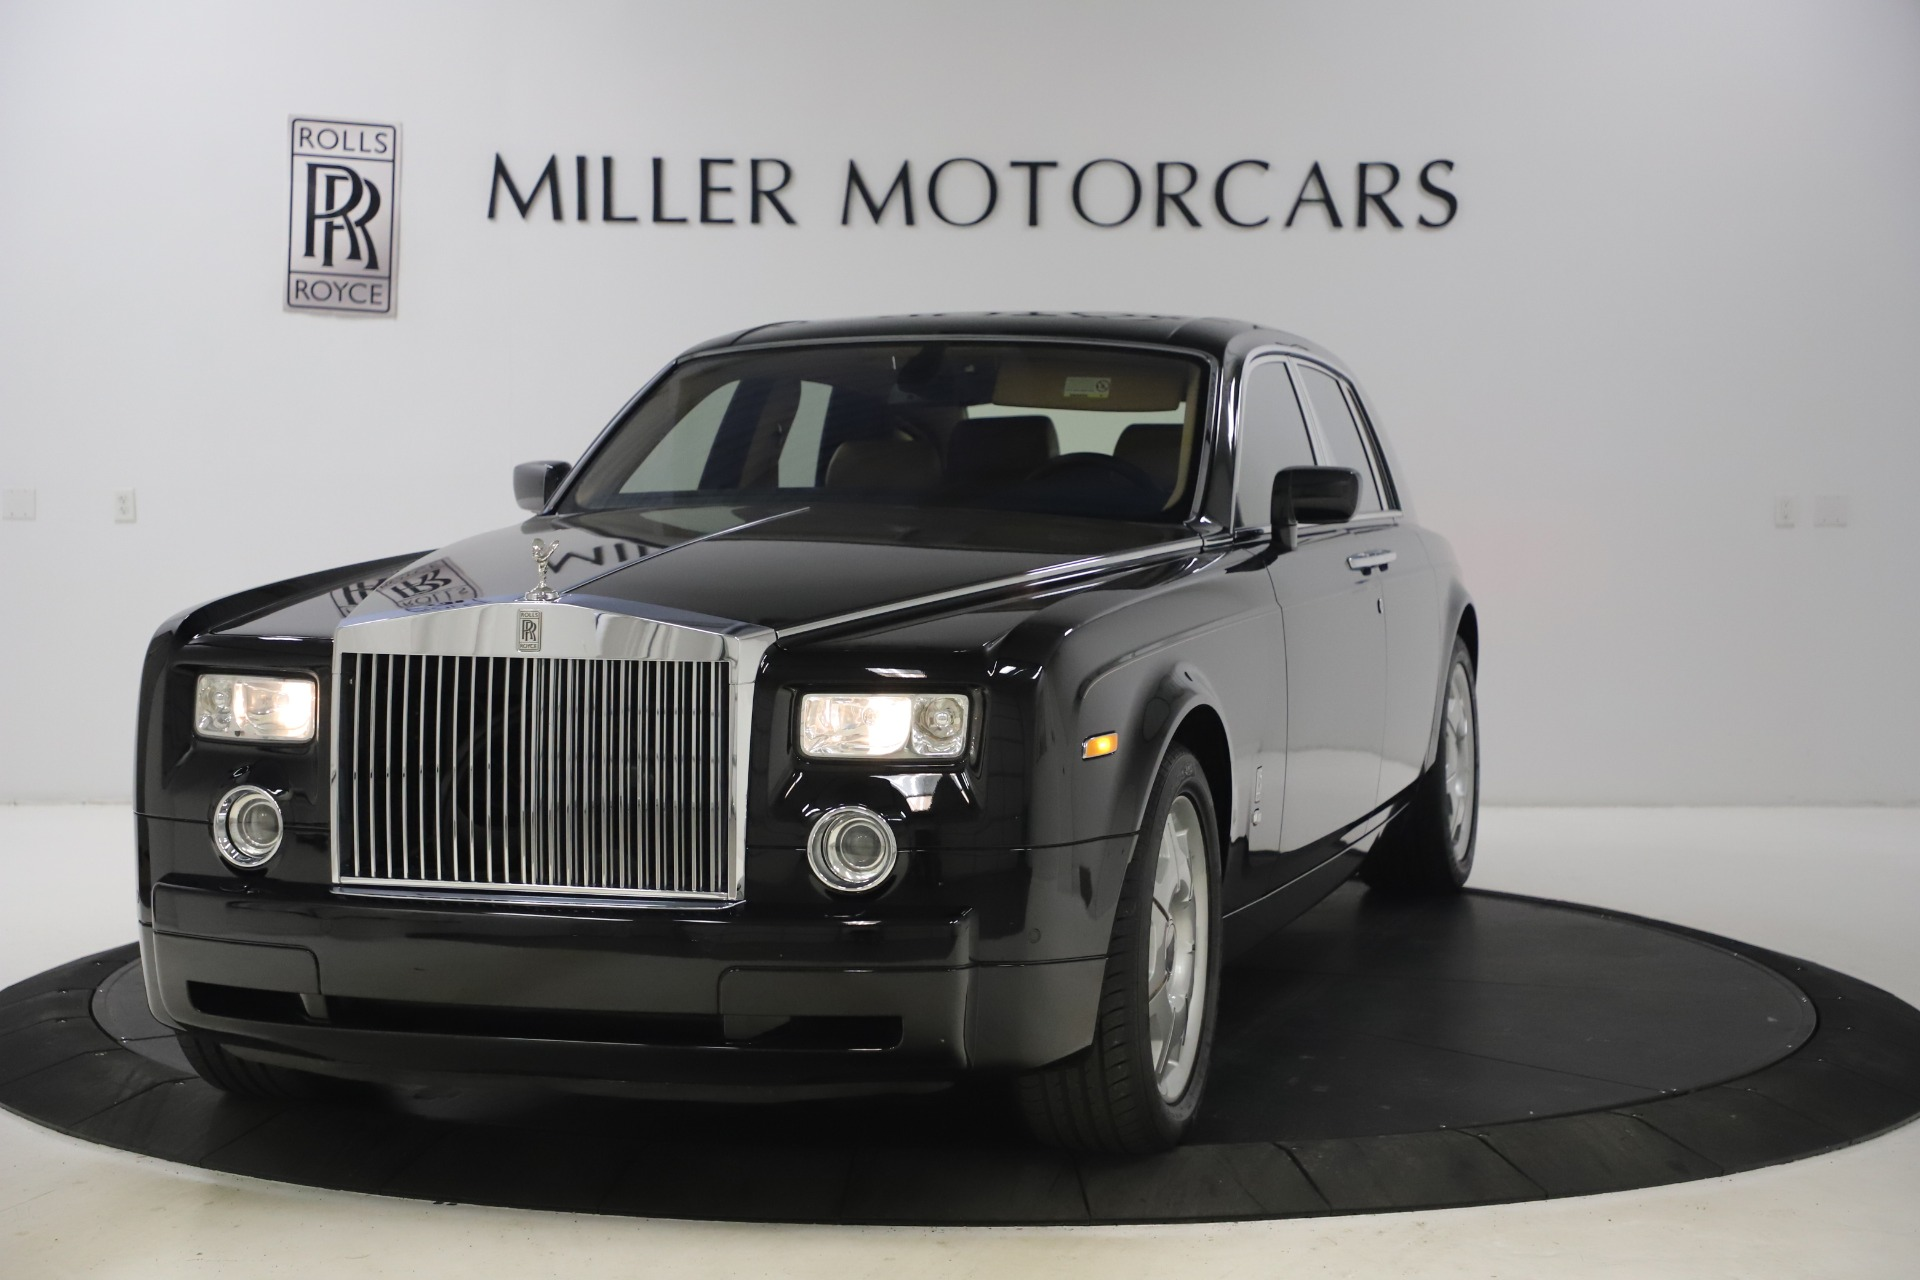 Used 2006 Rolls-Royce Phantom for sale $109,900 at Bentley Greenwich in Greenwich CT 06830 1